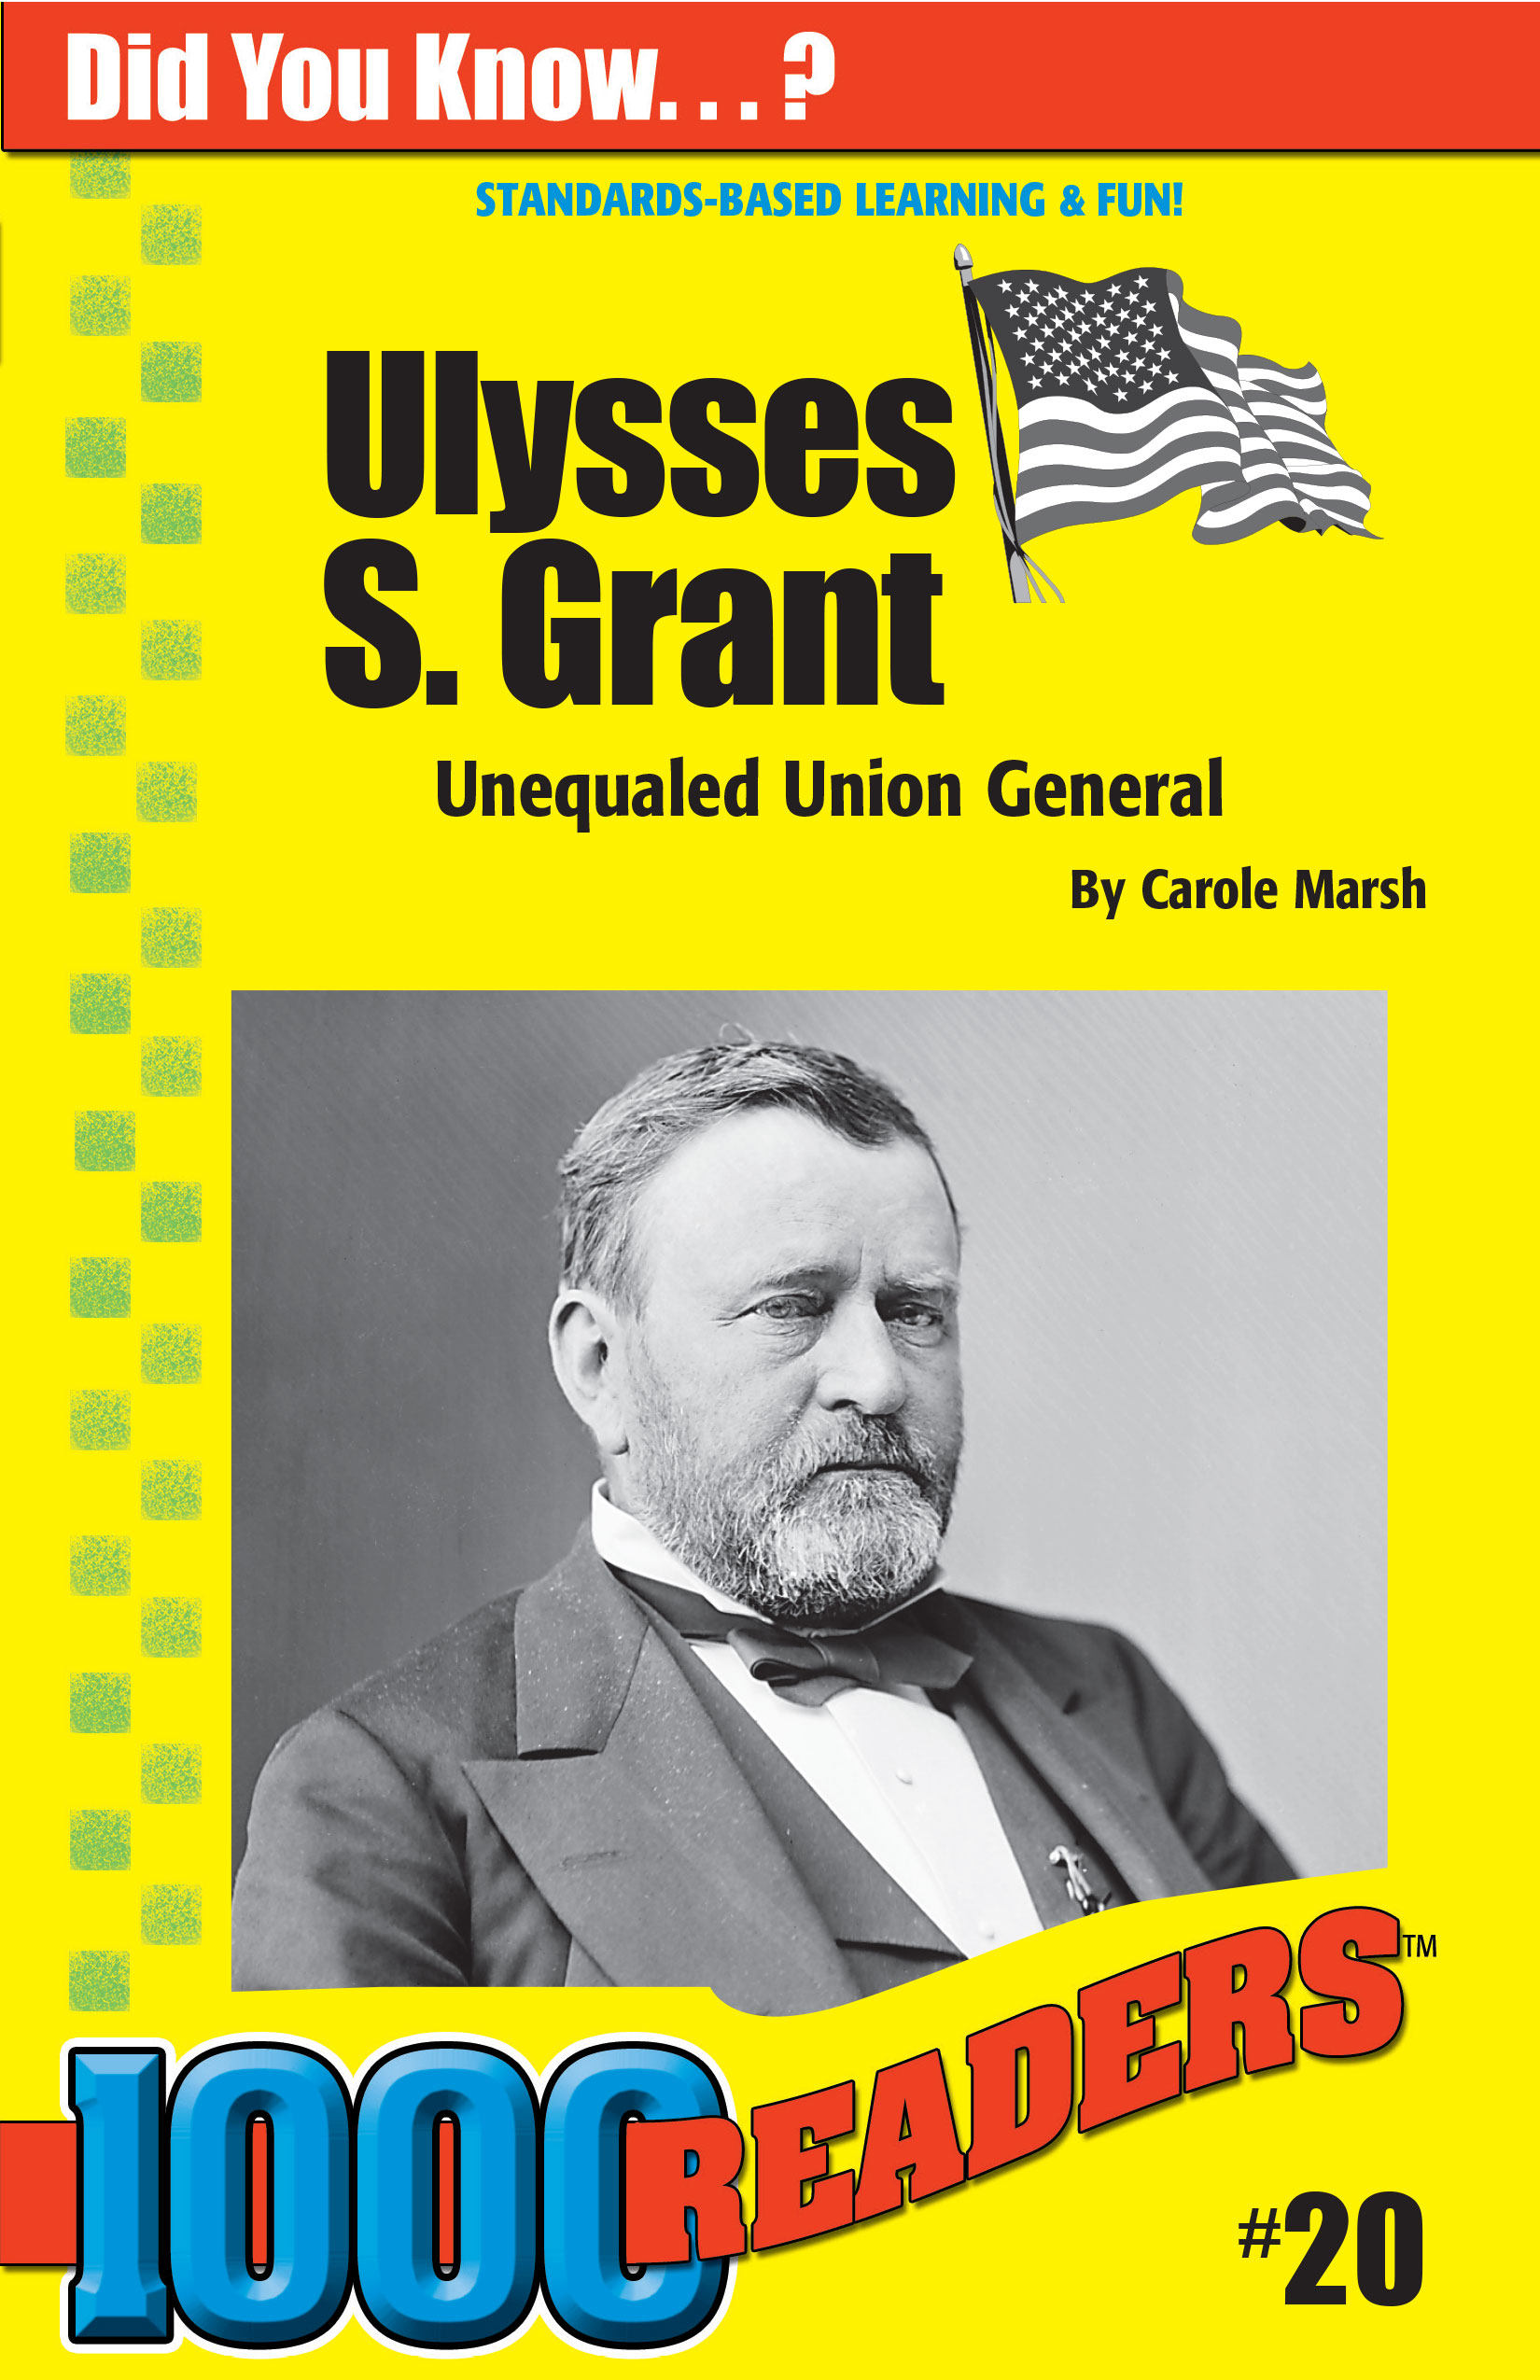 Ulysses S. Grant: Unequaled Union General